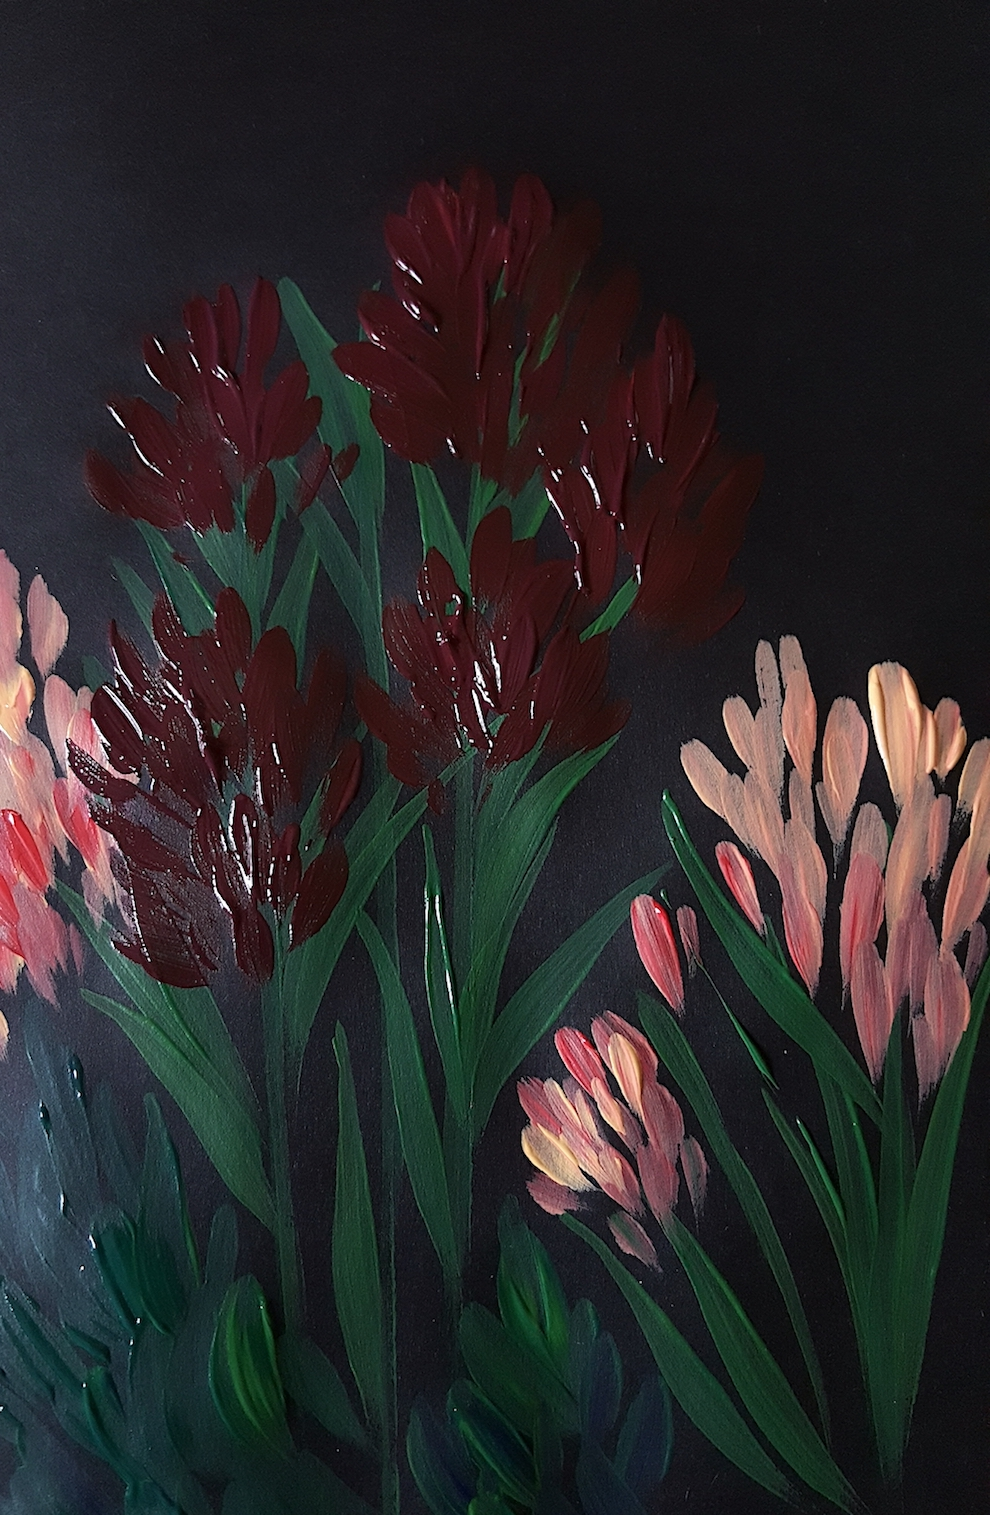 Acrylic Paintings Illustrator inspired by Burne Jones painting with claret colour